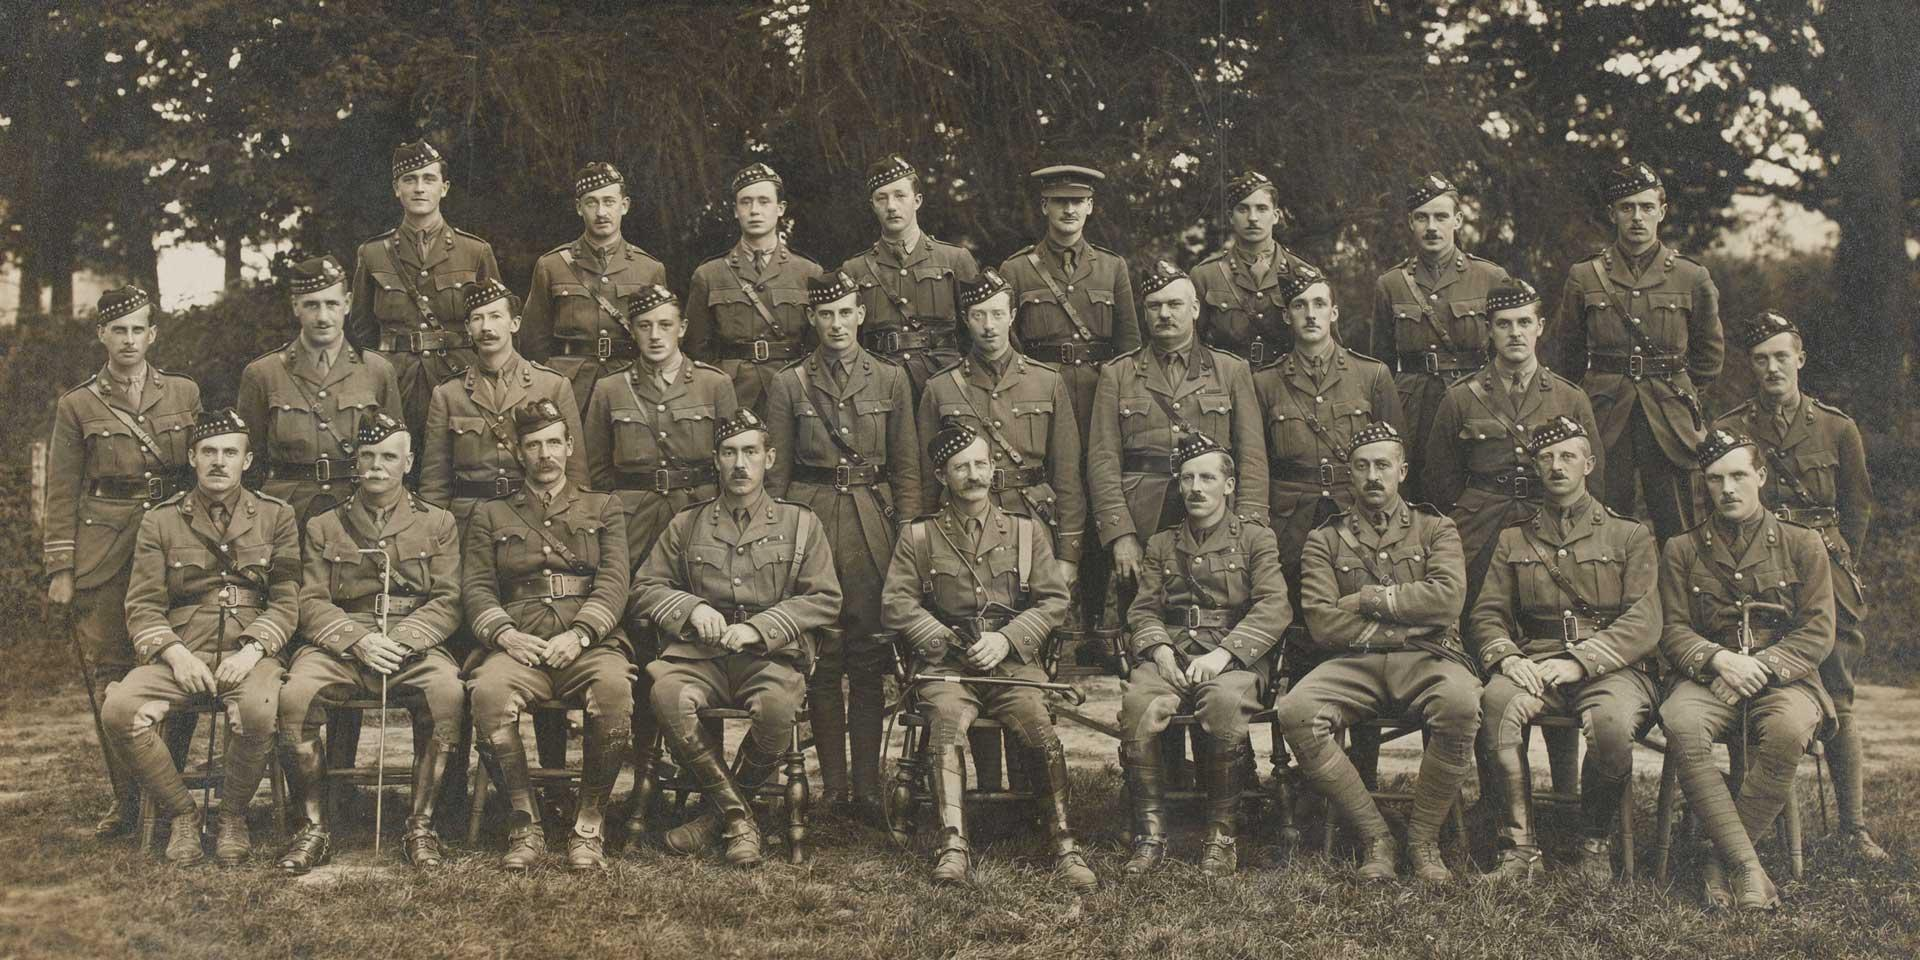 Officers of 8th (Service) Battalion, The Royal Scots Fusiliers, 1915